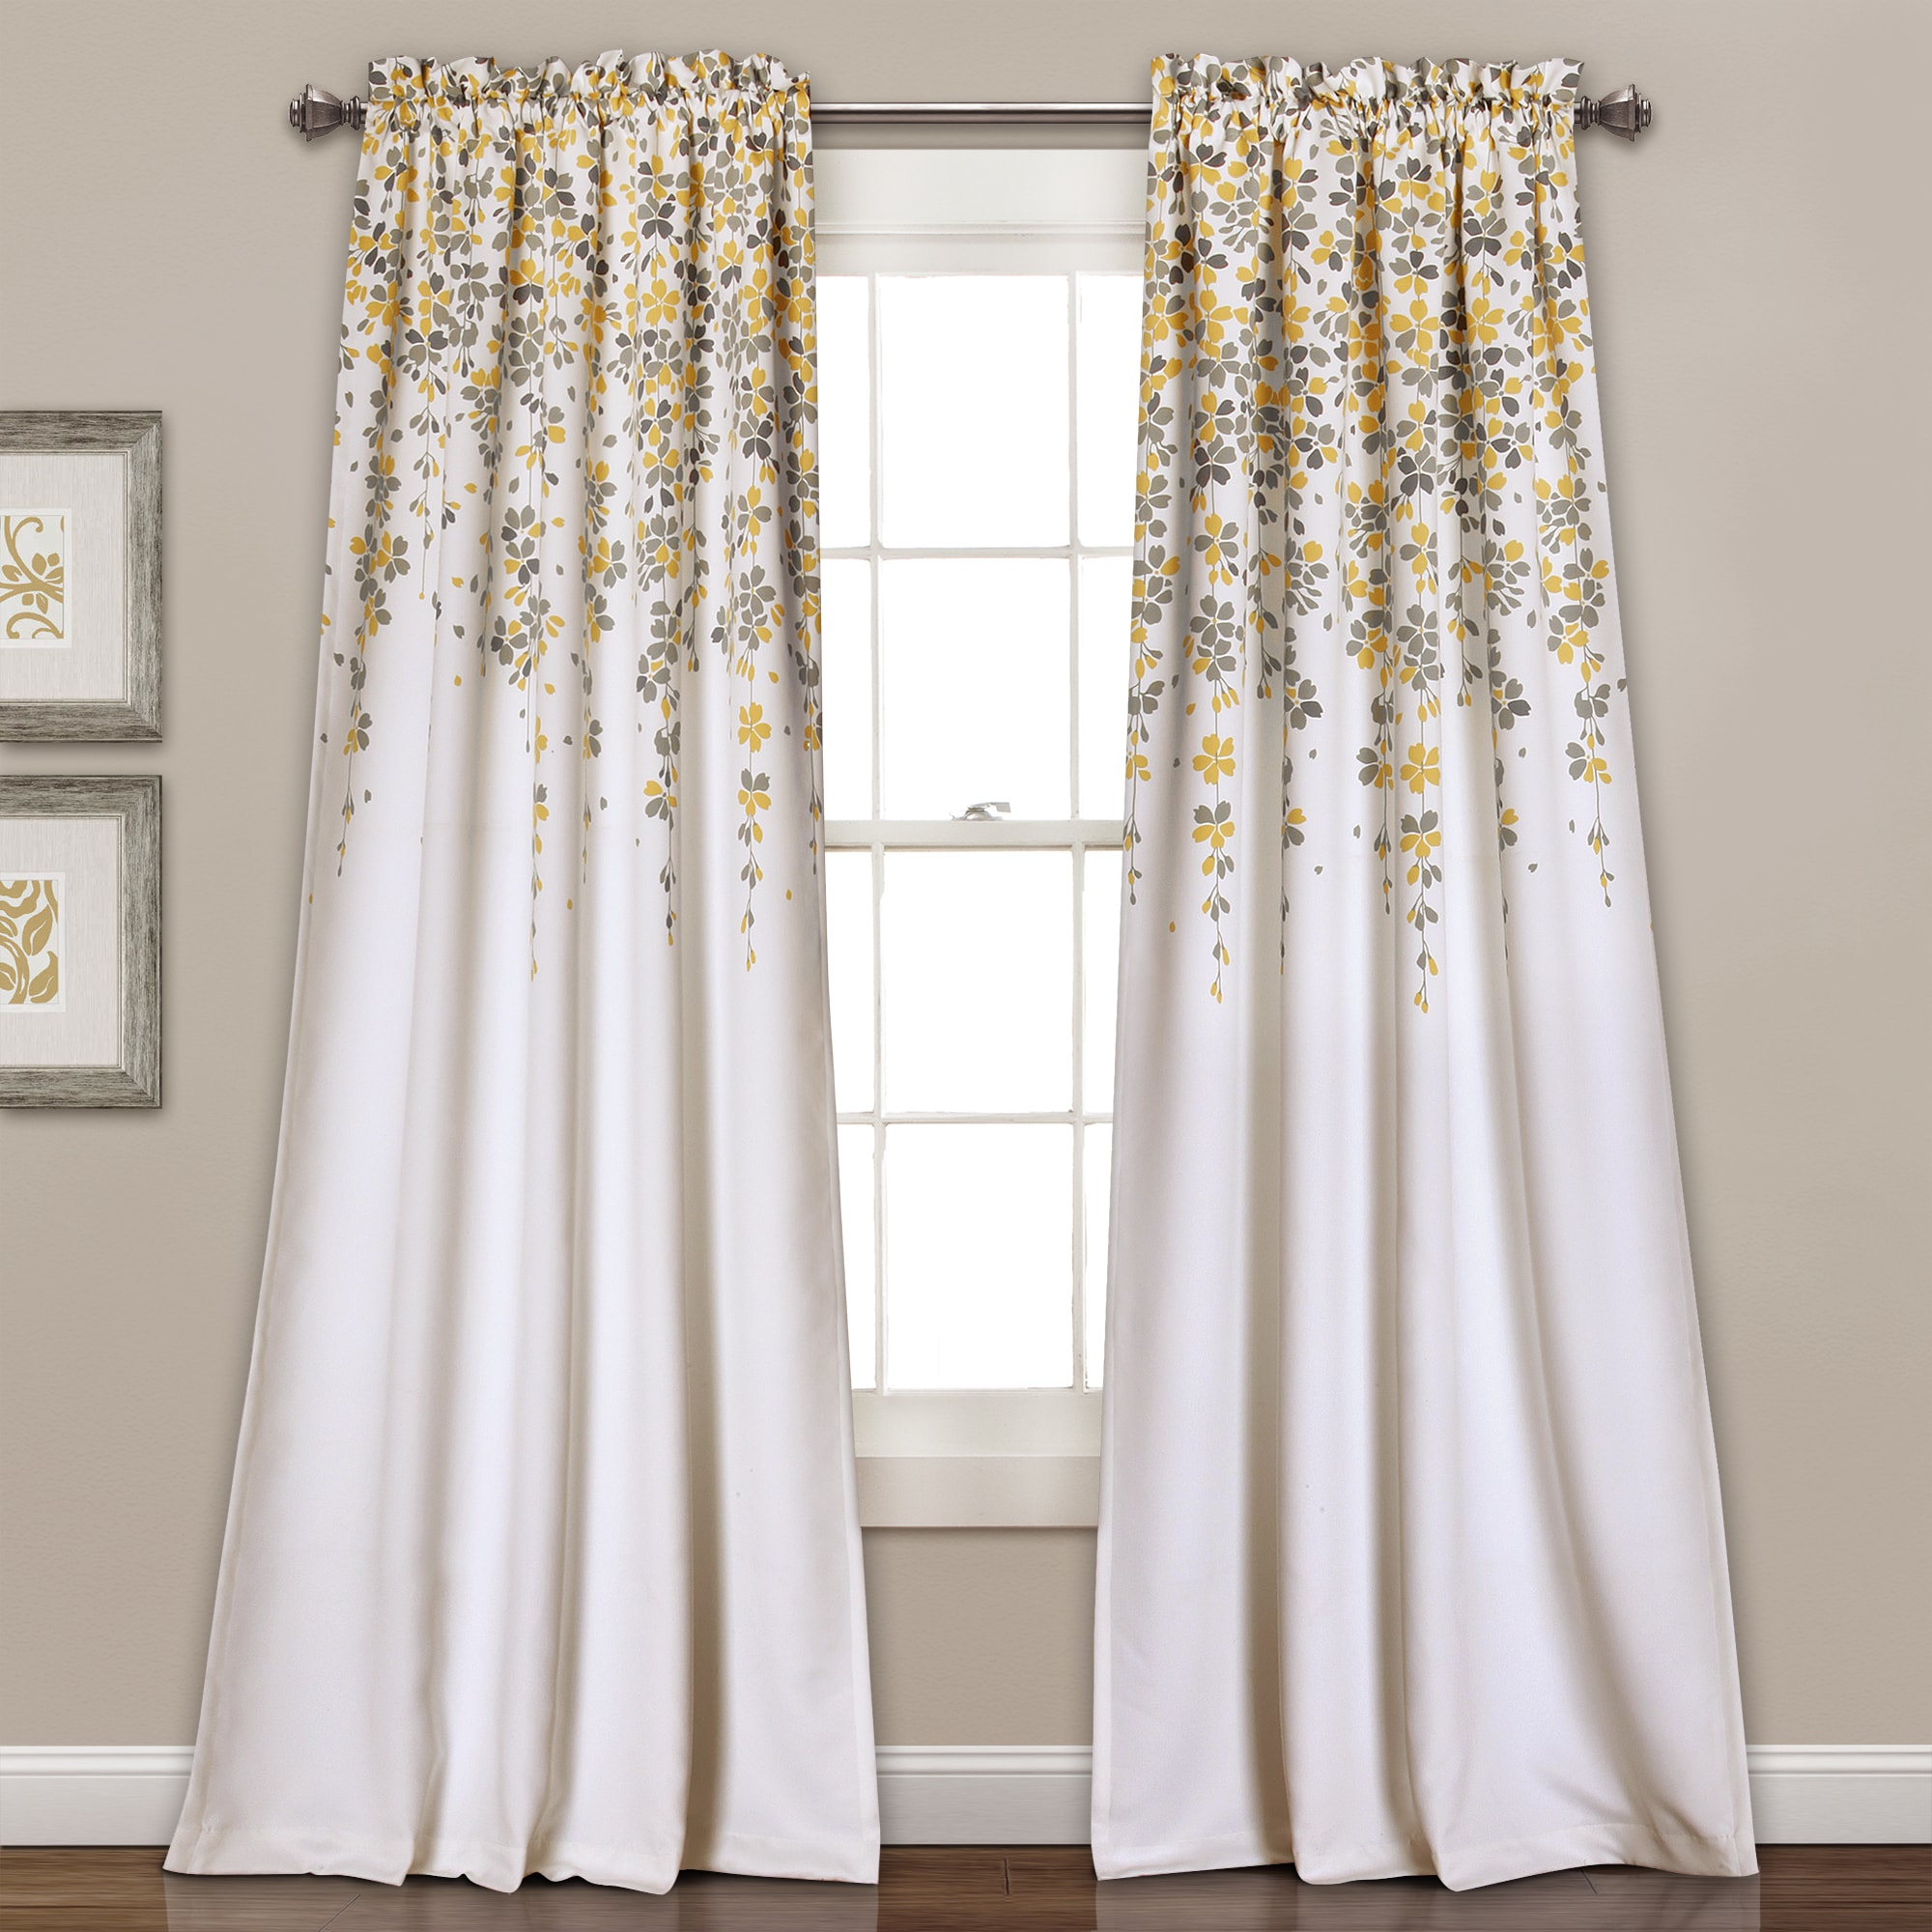 Fresh Topical Botanical Pattern Beige Linen Cotton Blend Fabric Room Darkening Curtains Decorate Interiors Elegant Look With These Country Style